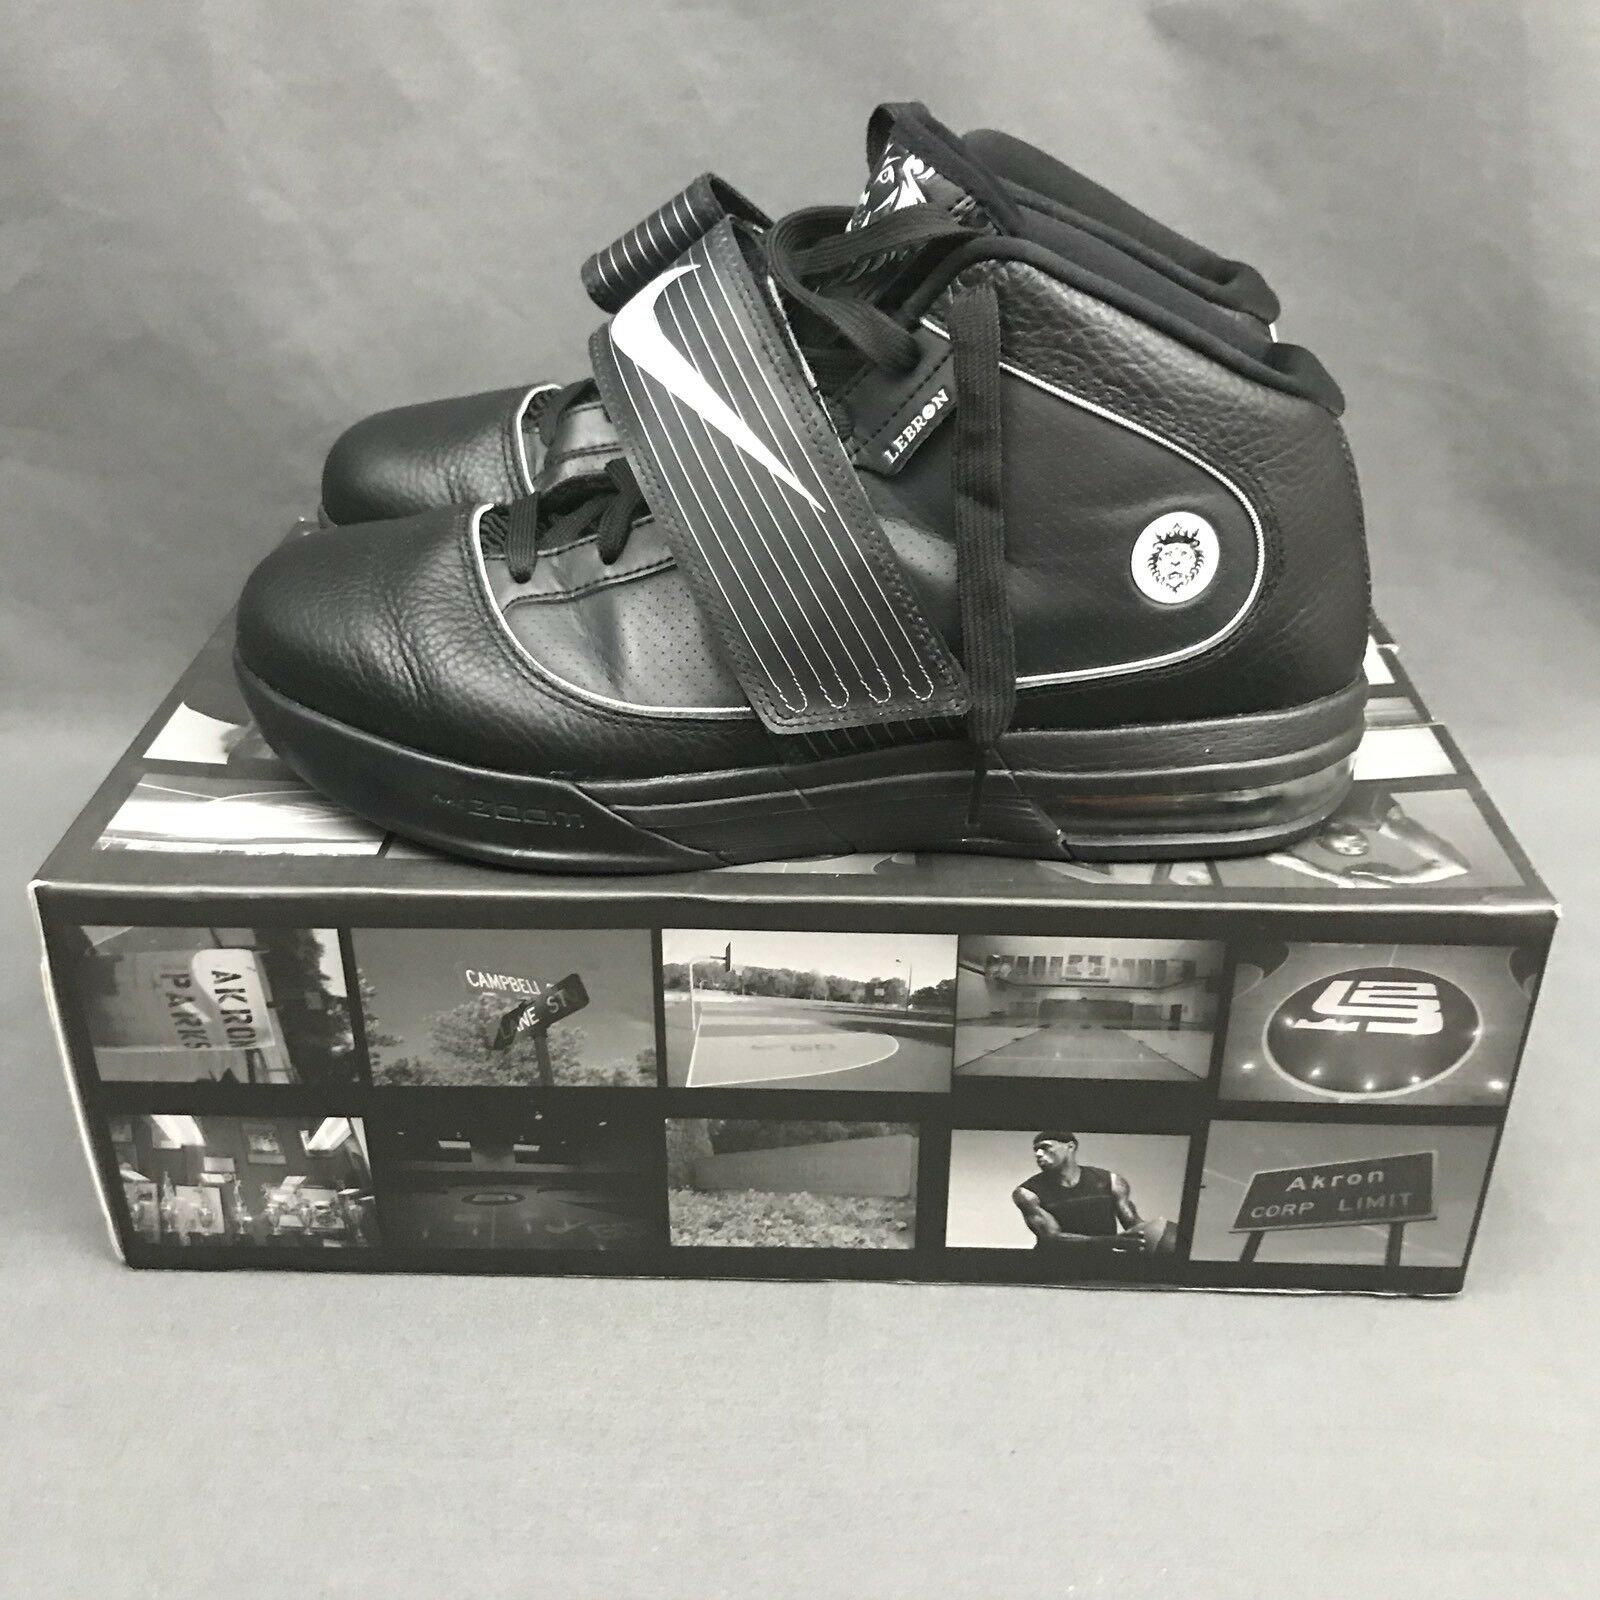 Nike Zoom Soldier IV TB 2010 Black Sneakers 407630 001 Size 10 w  Original Box